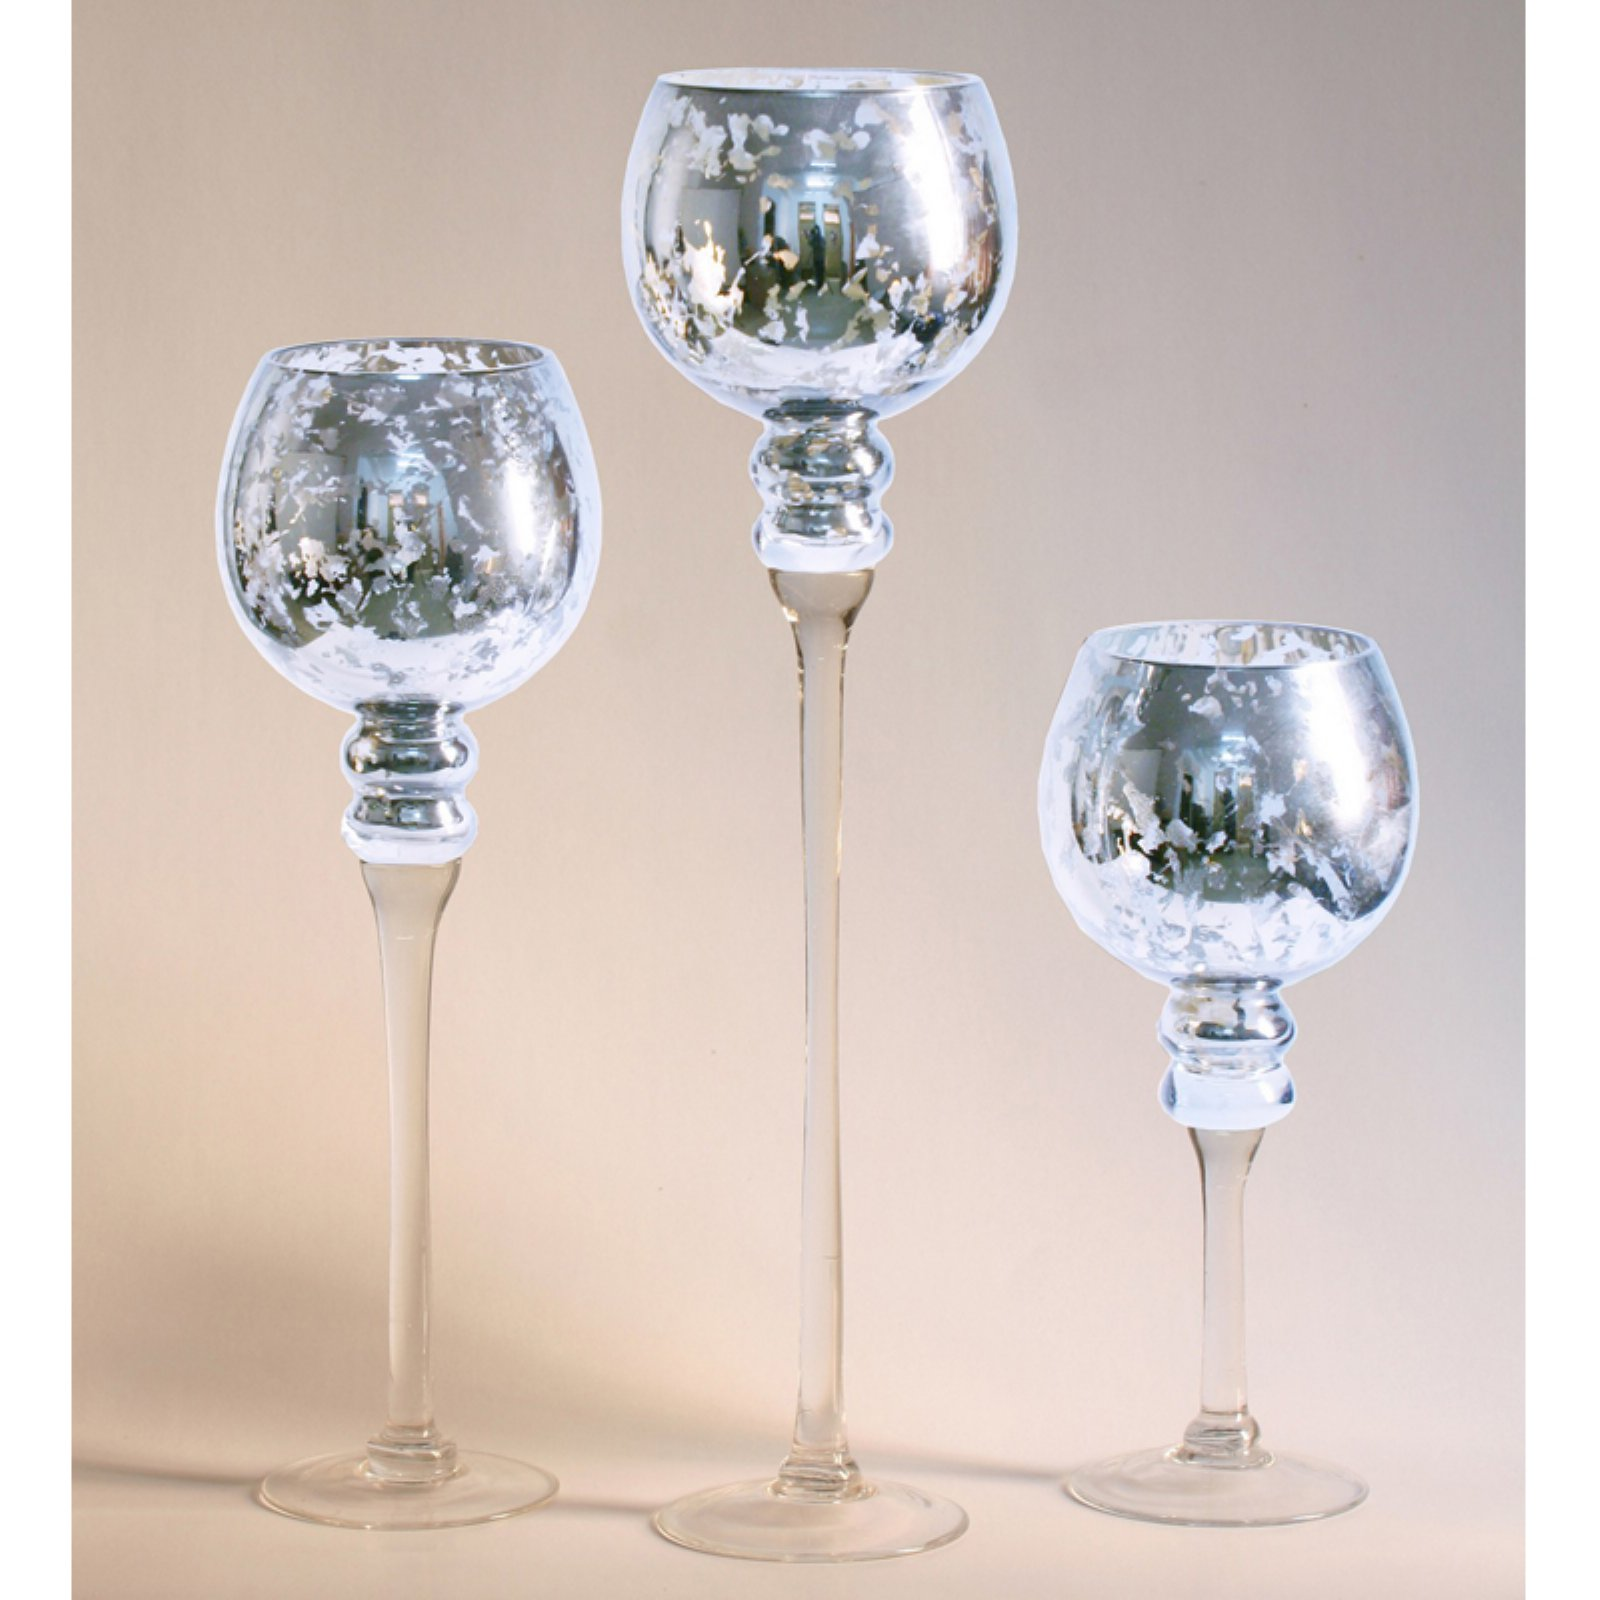 Privilege International Mercury Glass Stem Vase - Set of 3